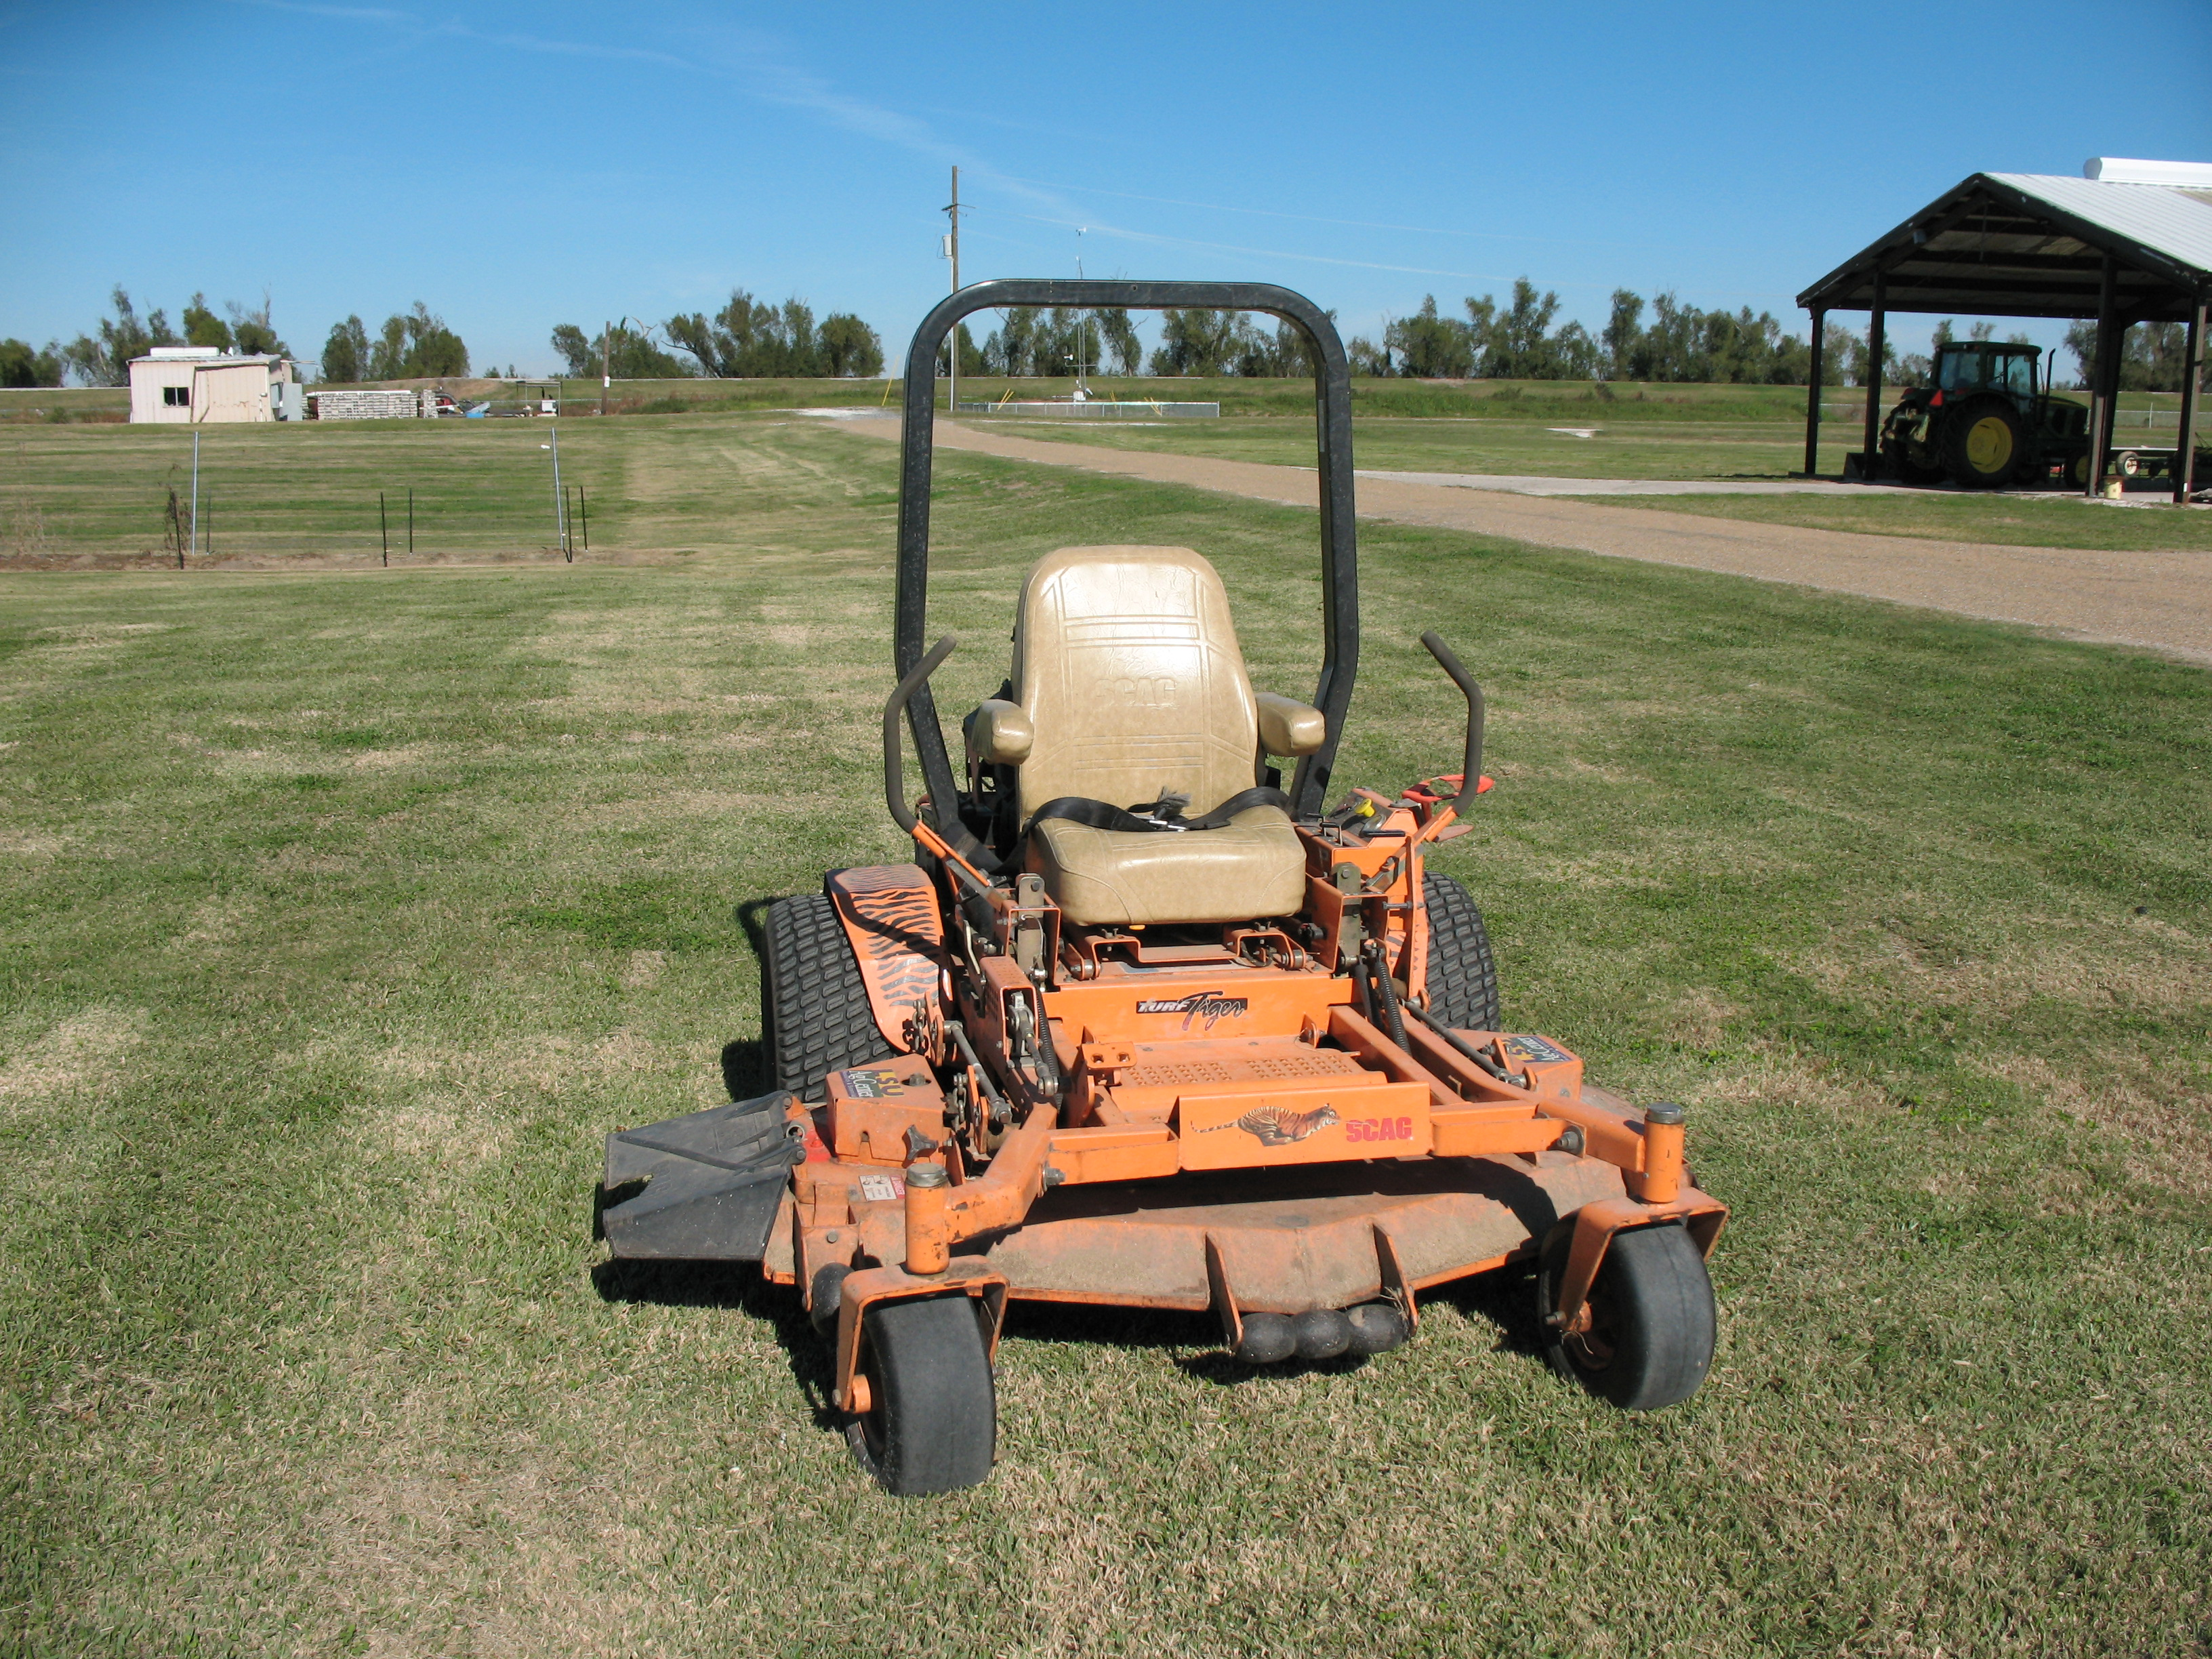 Safety Standards for Commercial-size Riding Mowers